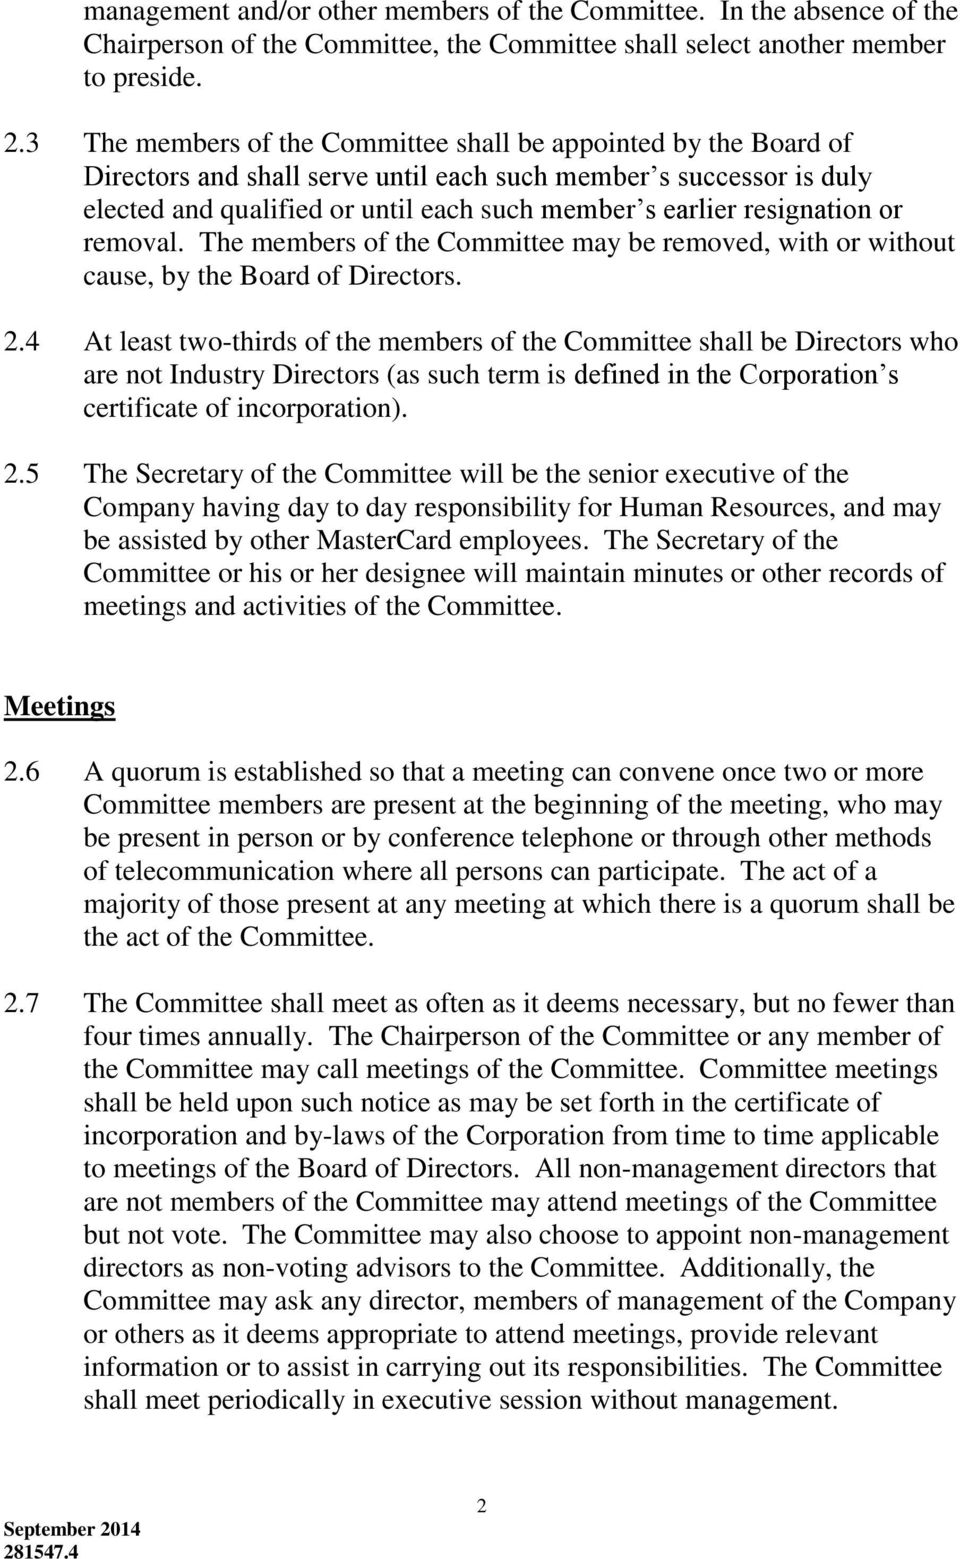 resignation or removal. The members of the Committee may be removed, with or without cause, by the Board of Directors. 2.